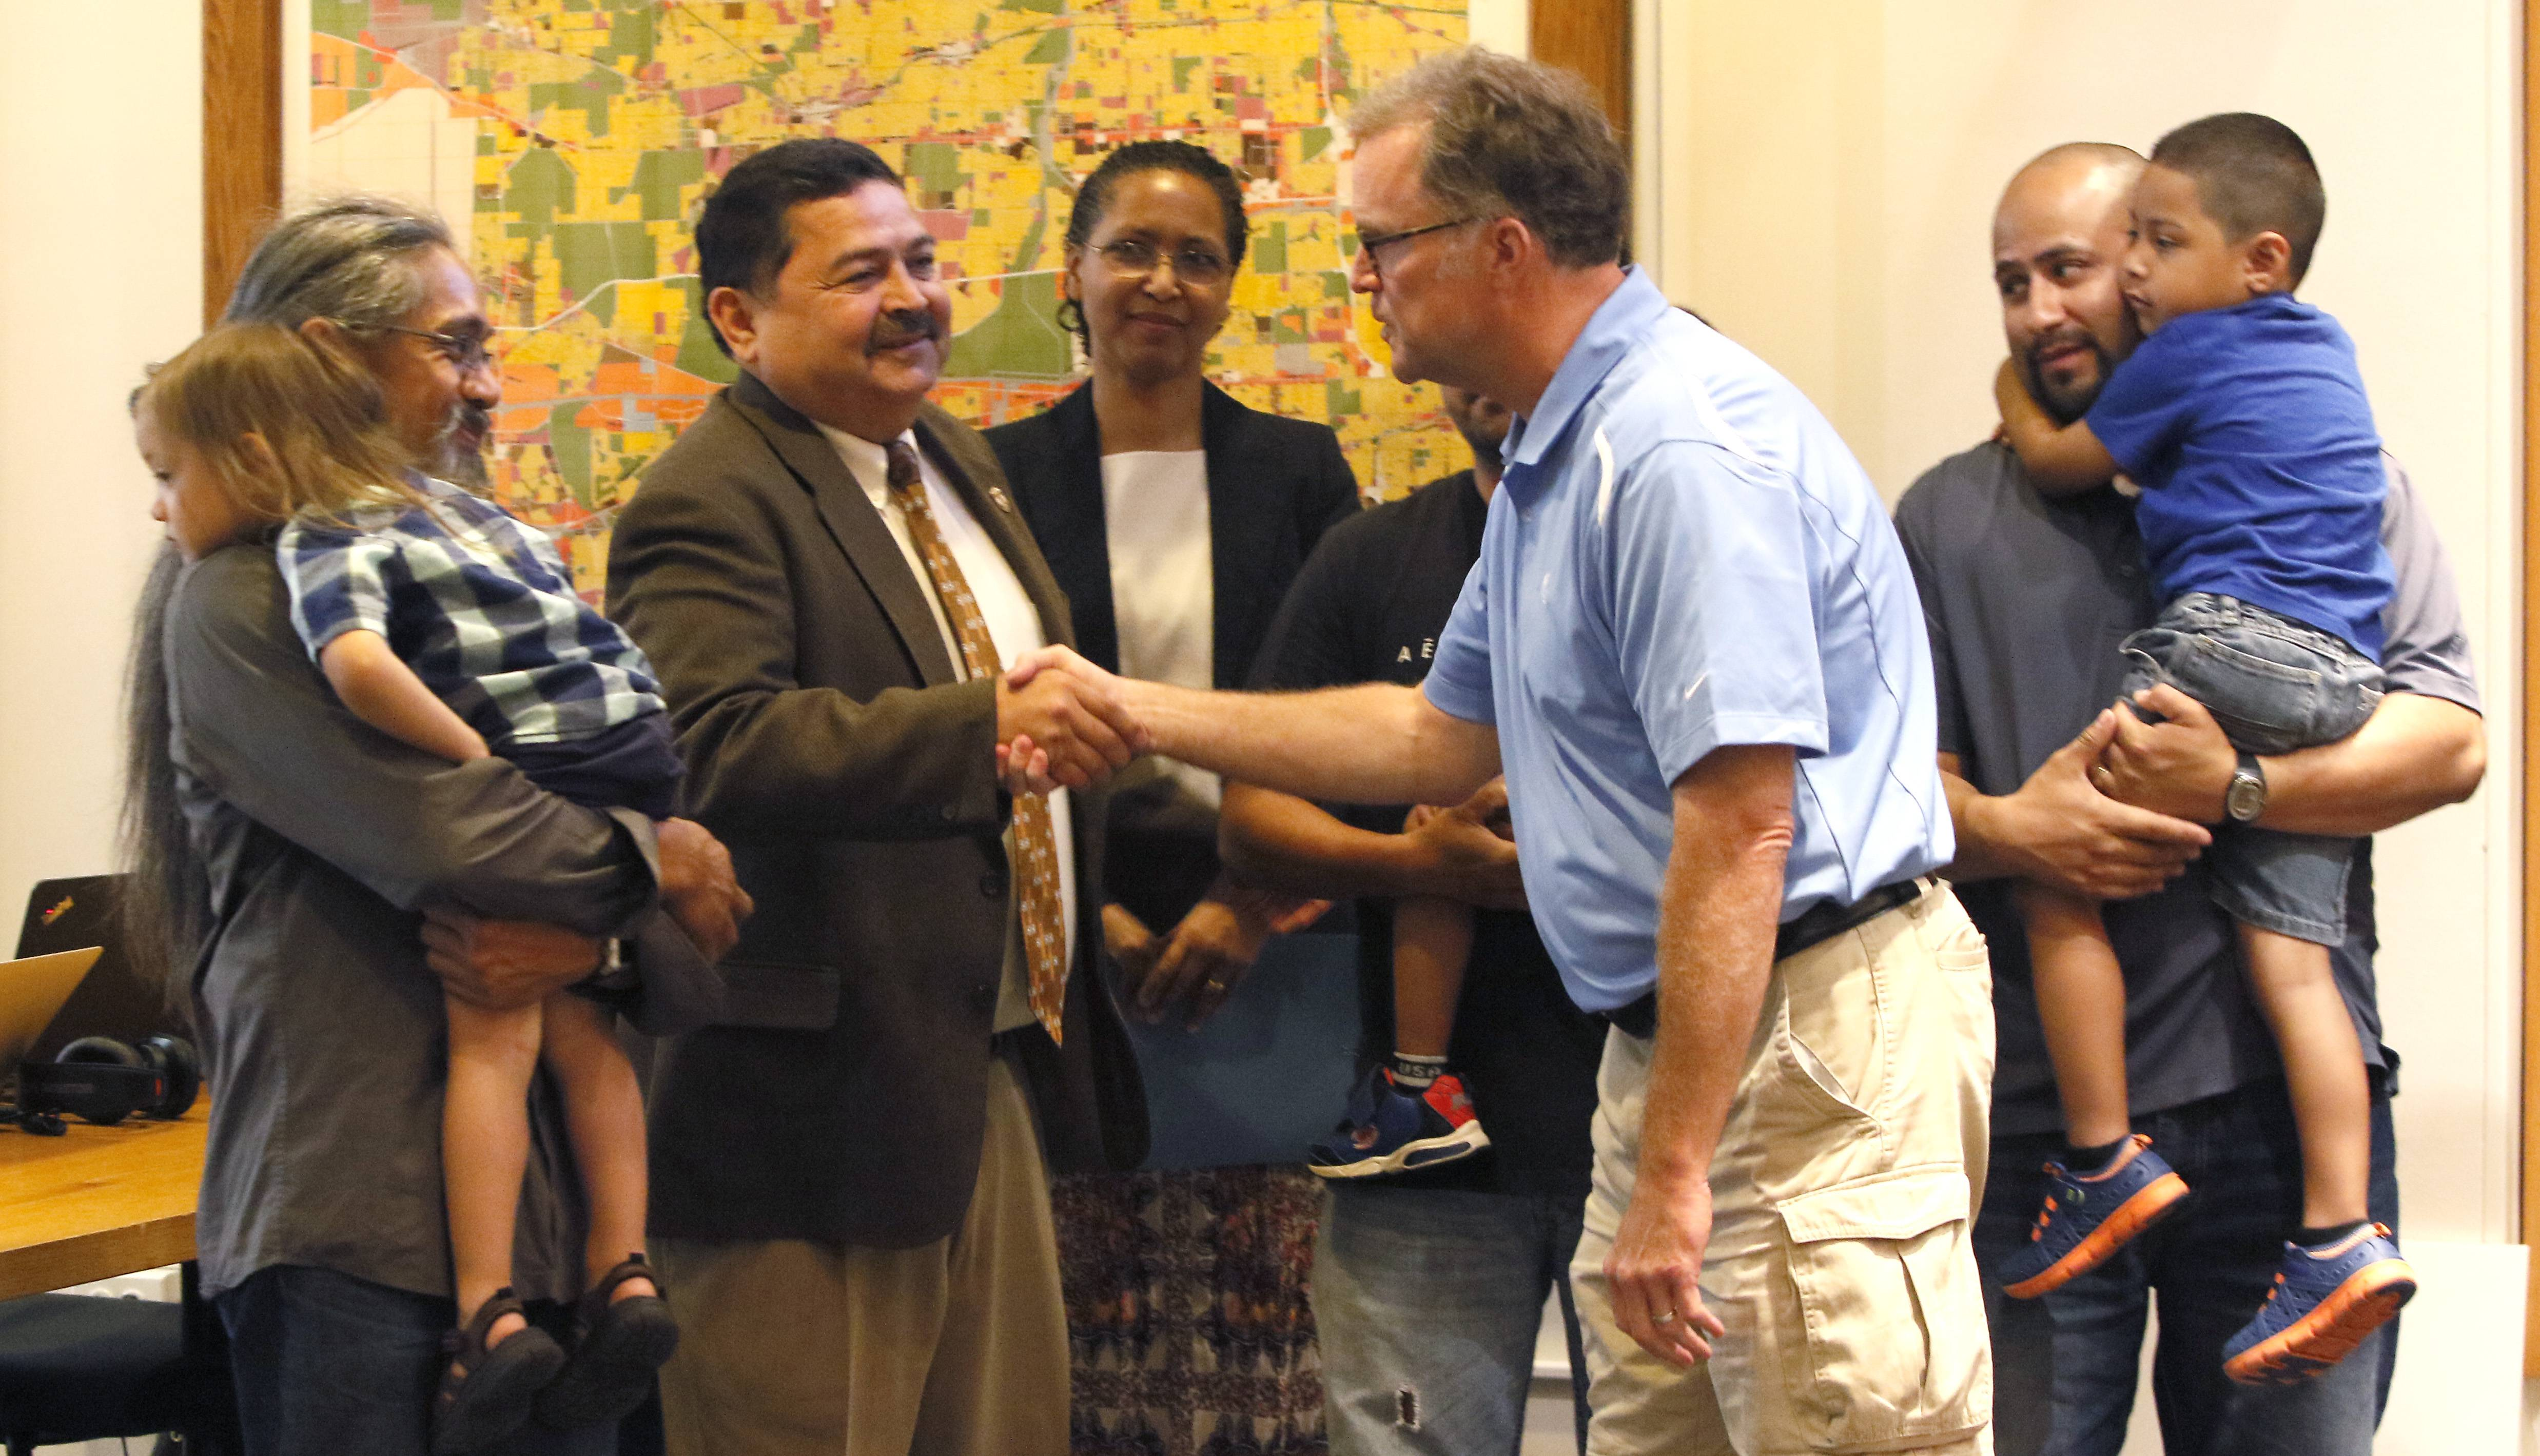 West Chicago Mayor Ruben Pineda, left, shakes hands with DuPage County Board Chairman Dan Cronin, right, after the county board honored several West Chicago families for participating in the Fathers Reading Every Day program offered by West Chicago Elementary District 33.